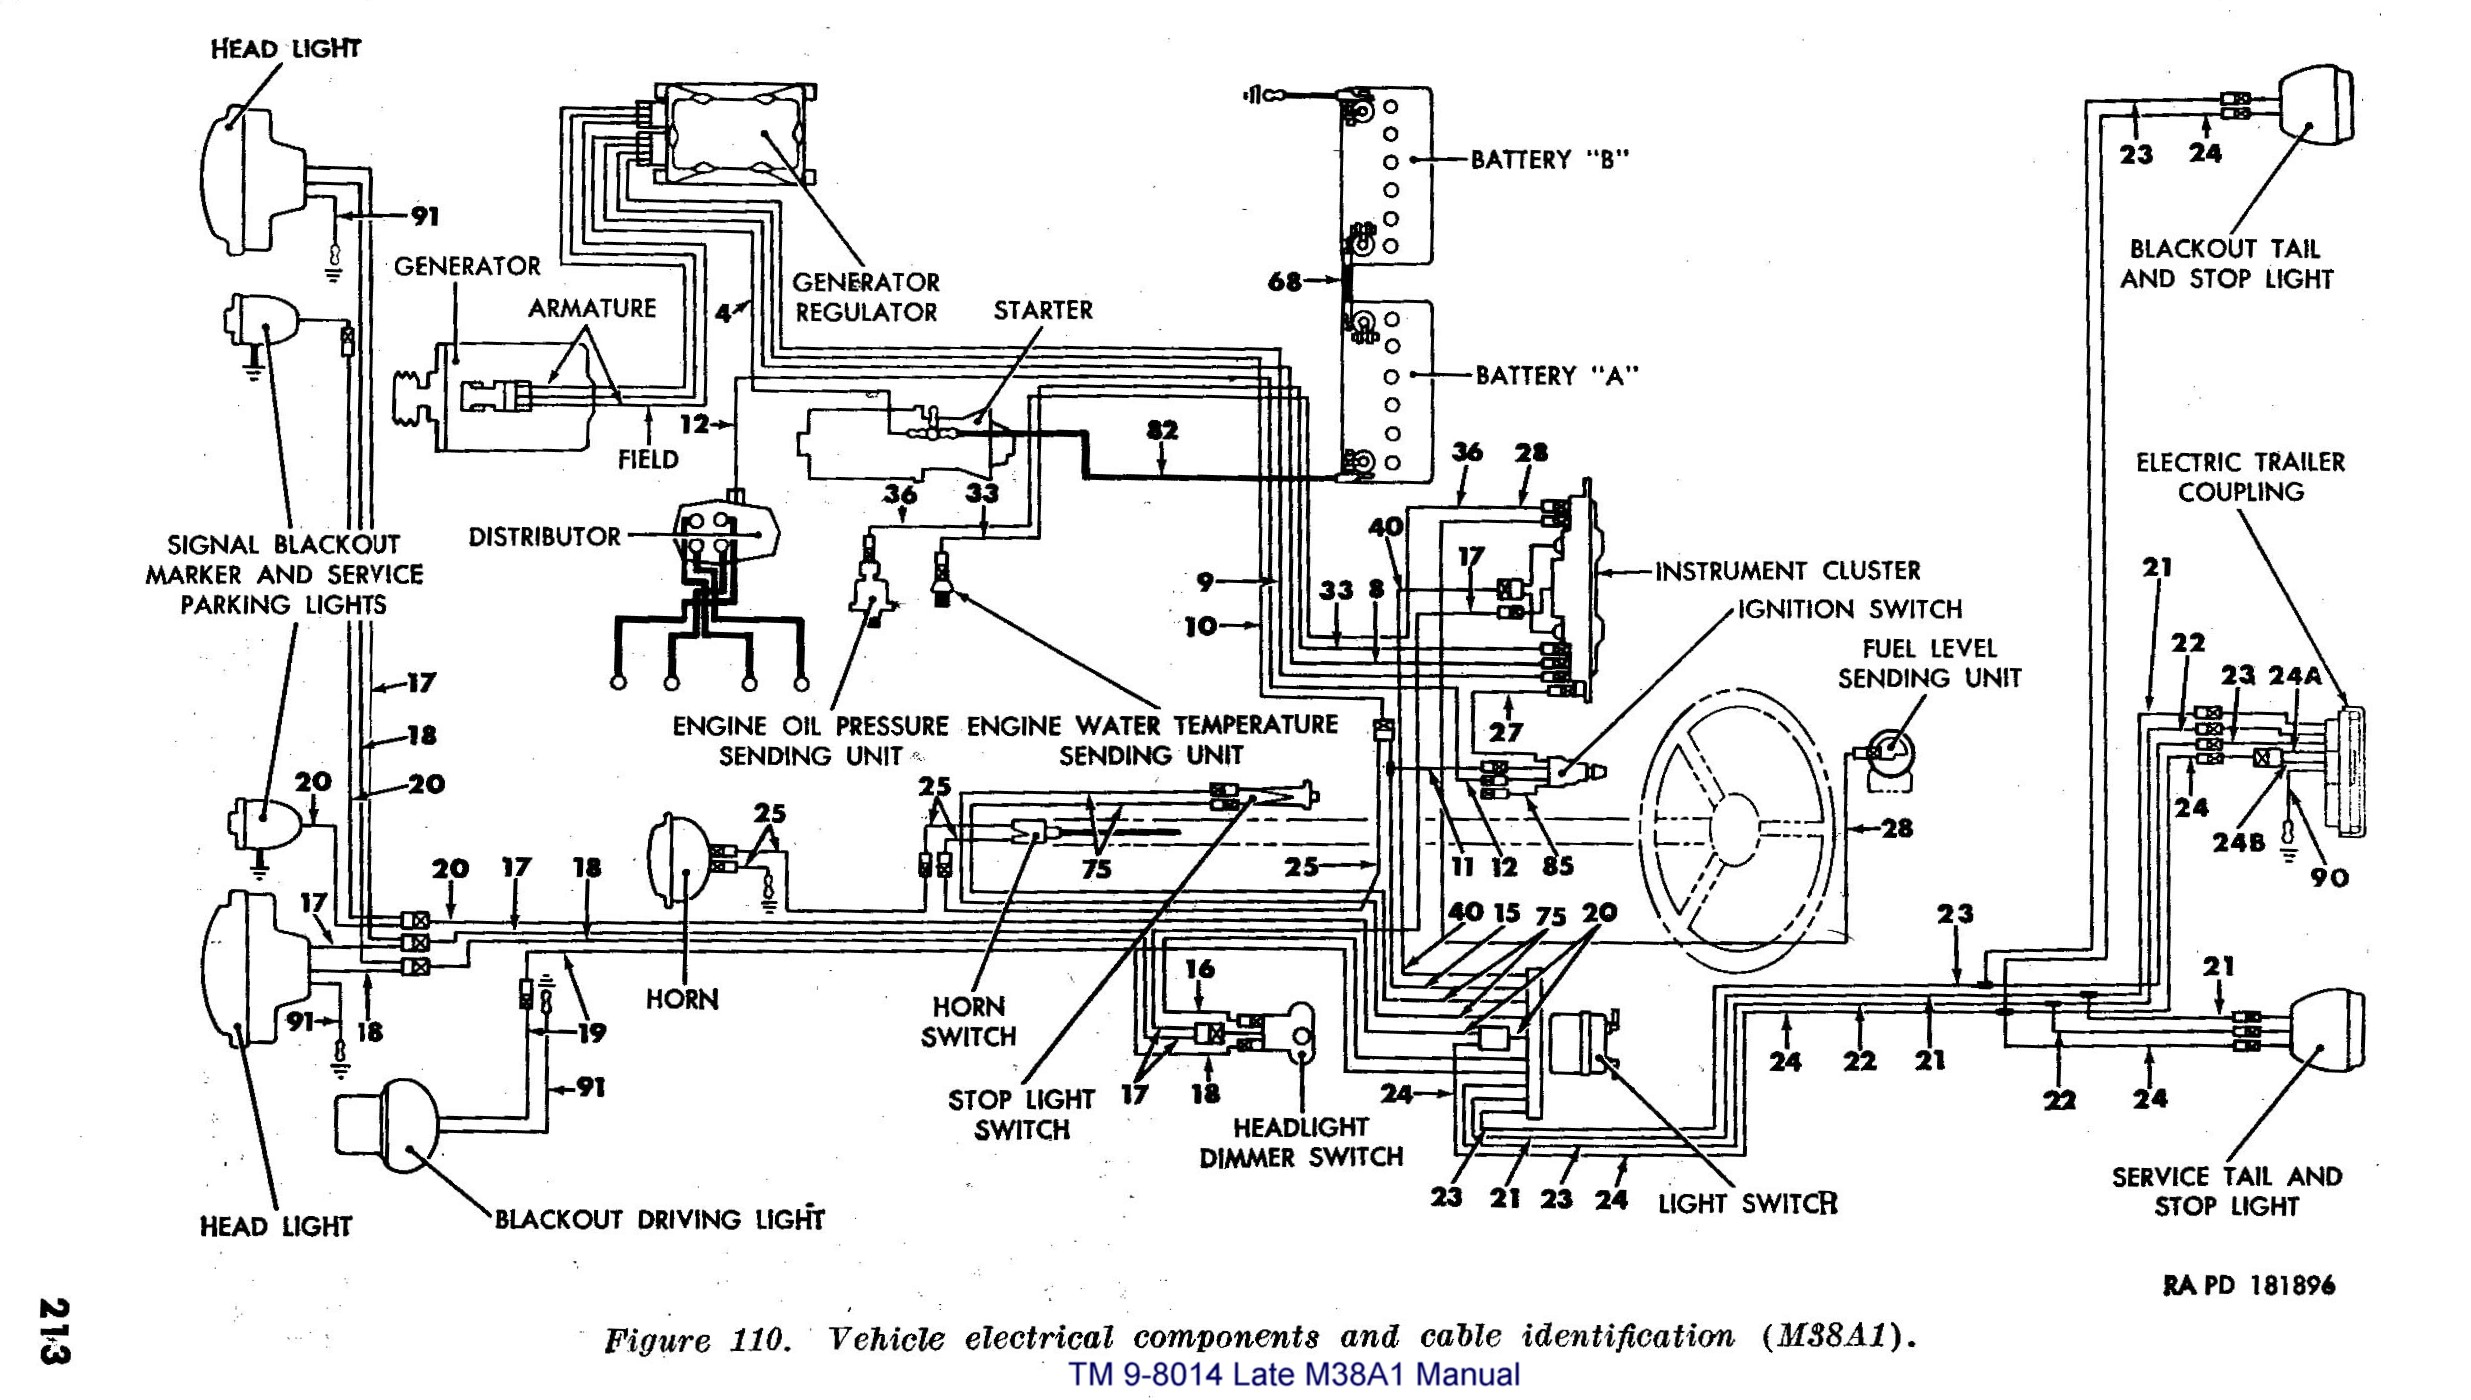 Wiring Diagram For 1948 1949 Ford Trucks All About in addition View photo likewise 1952 Willys Wiring Diagram together with 374150681512275828 additionally Willys Mb Distributor Wiring Diagrams. on 1947 willys jeep wiring diagram